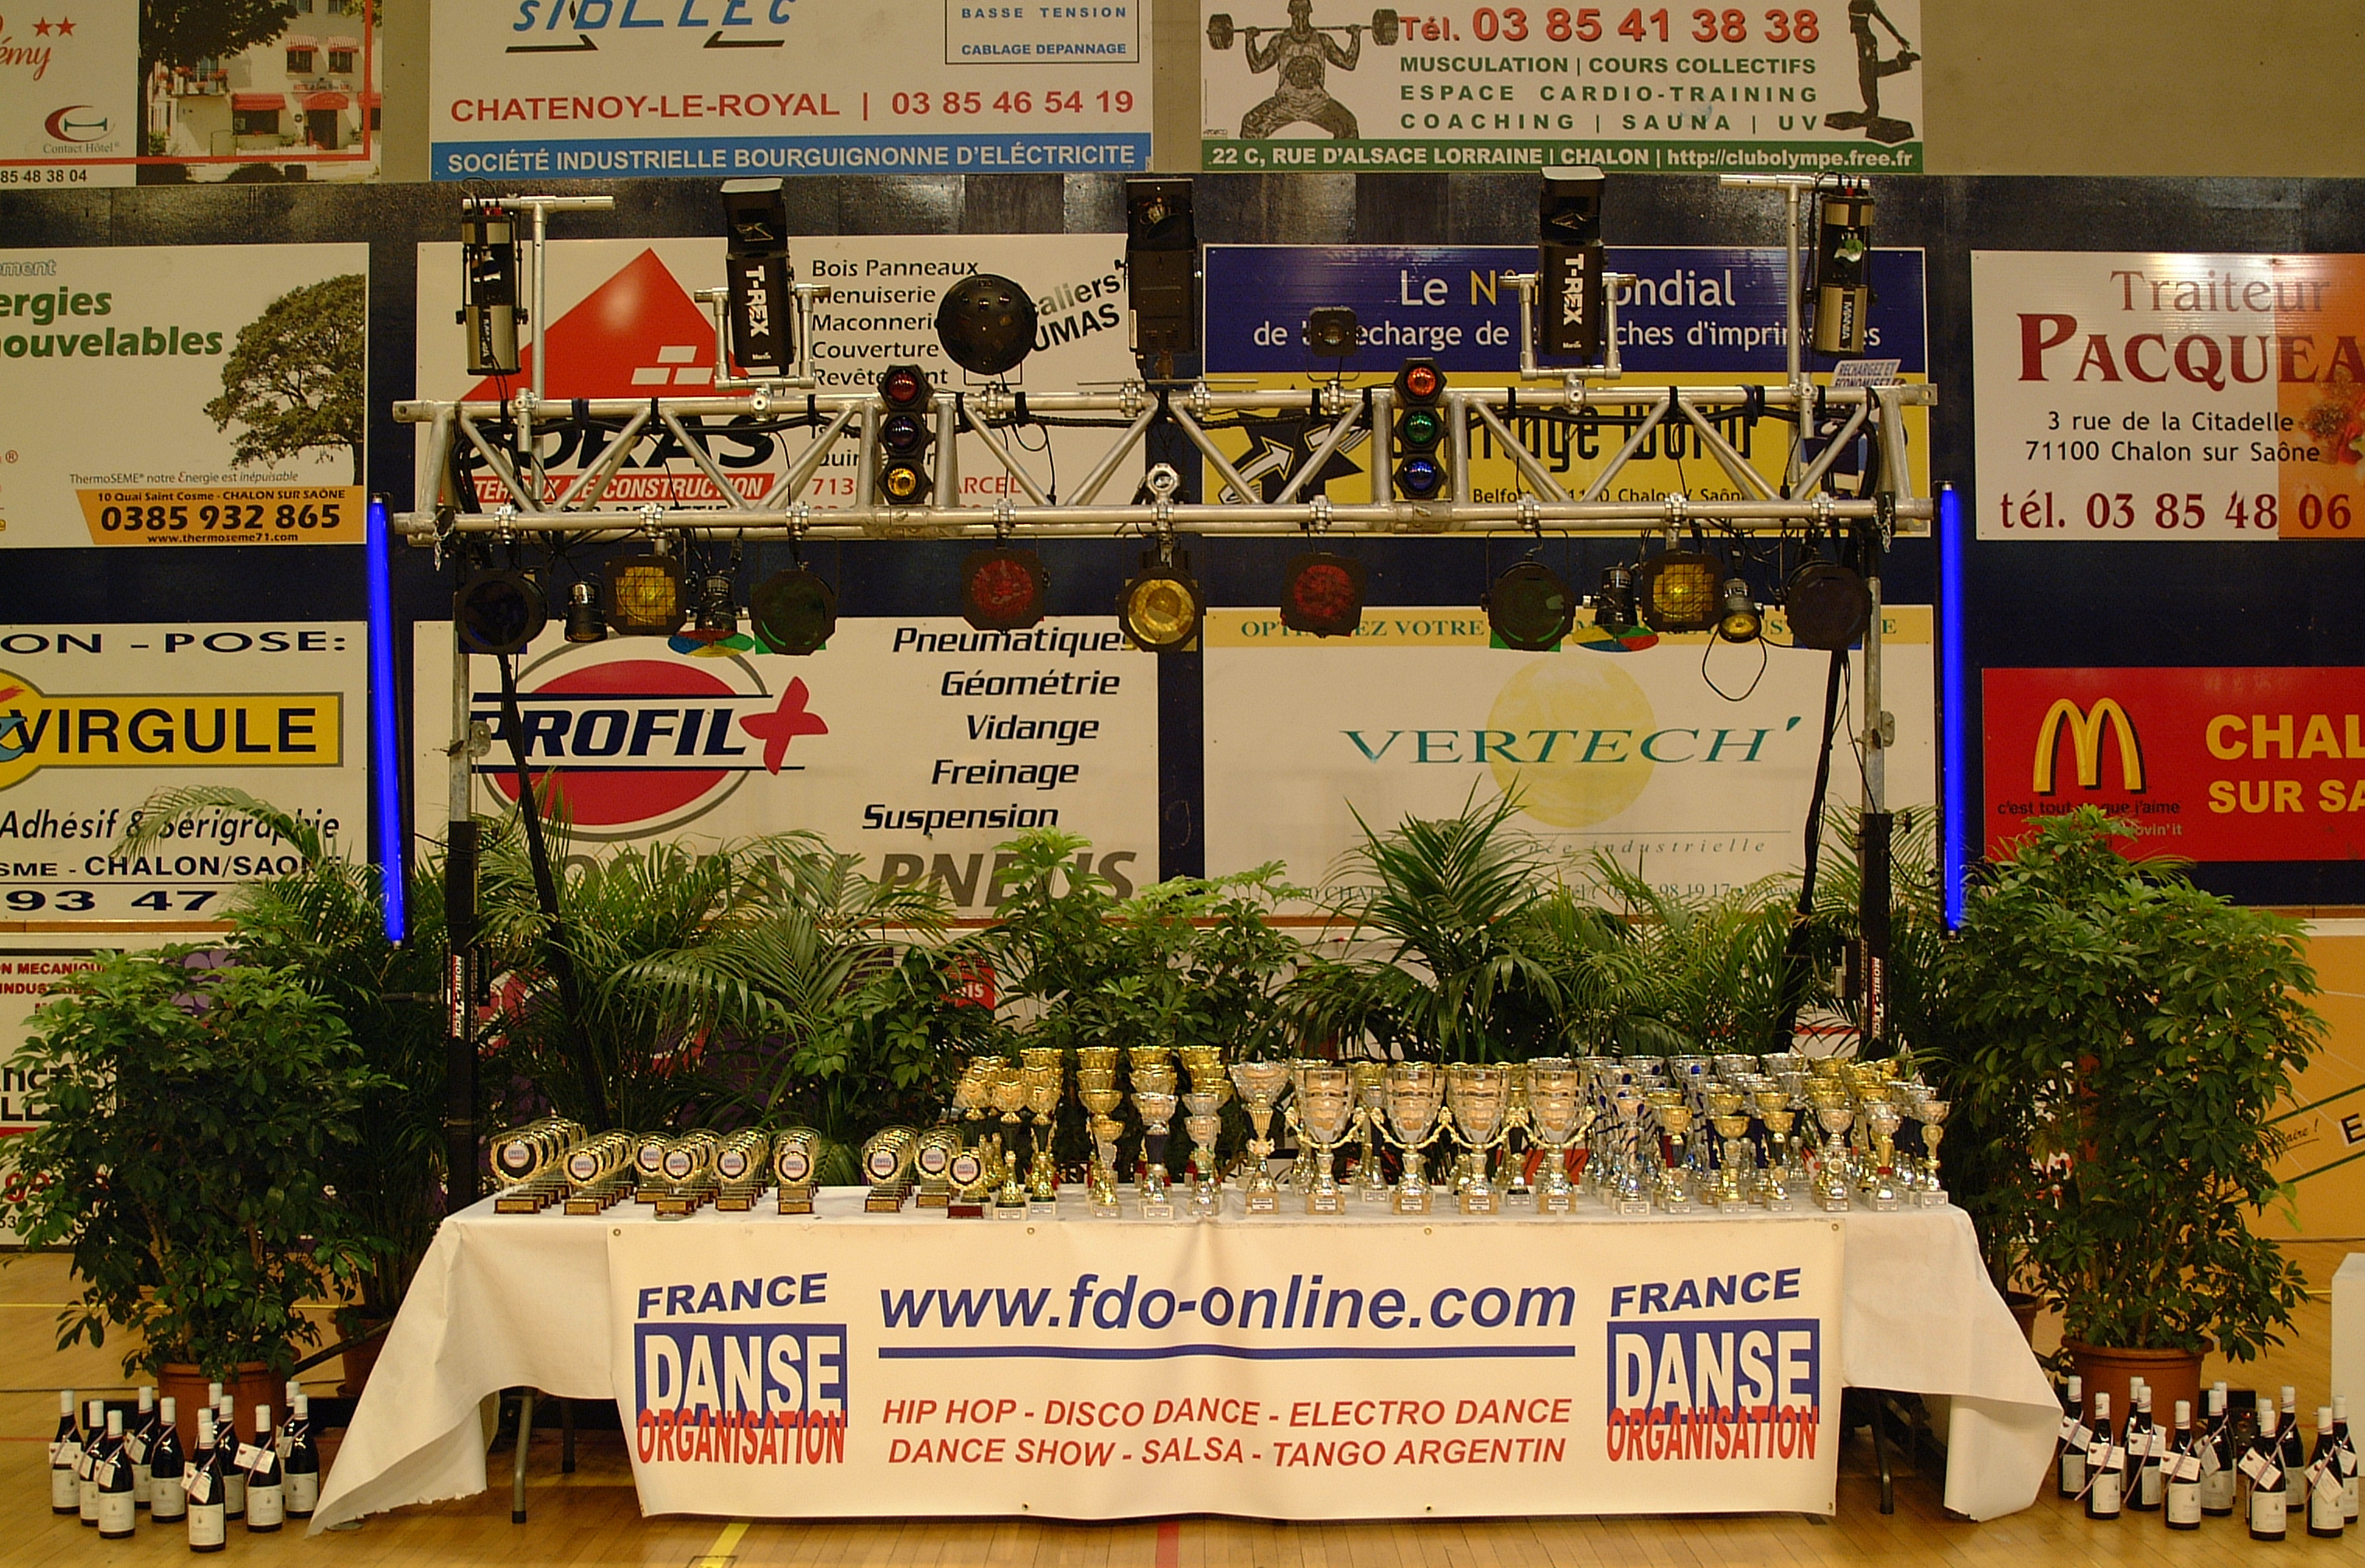 Coupe de France de Danse 2009